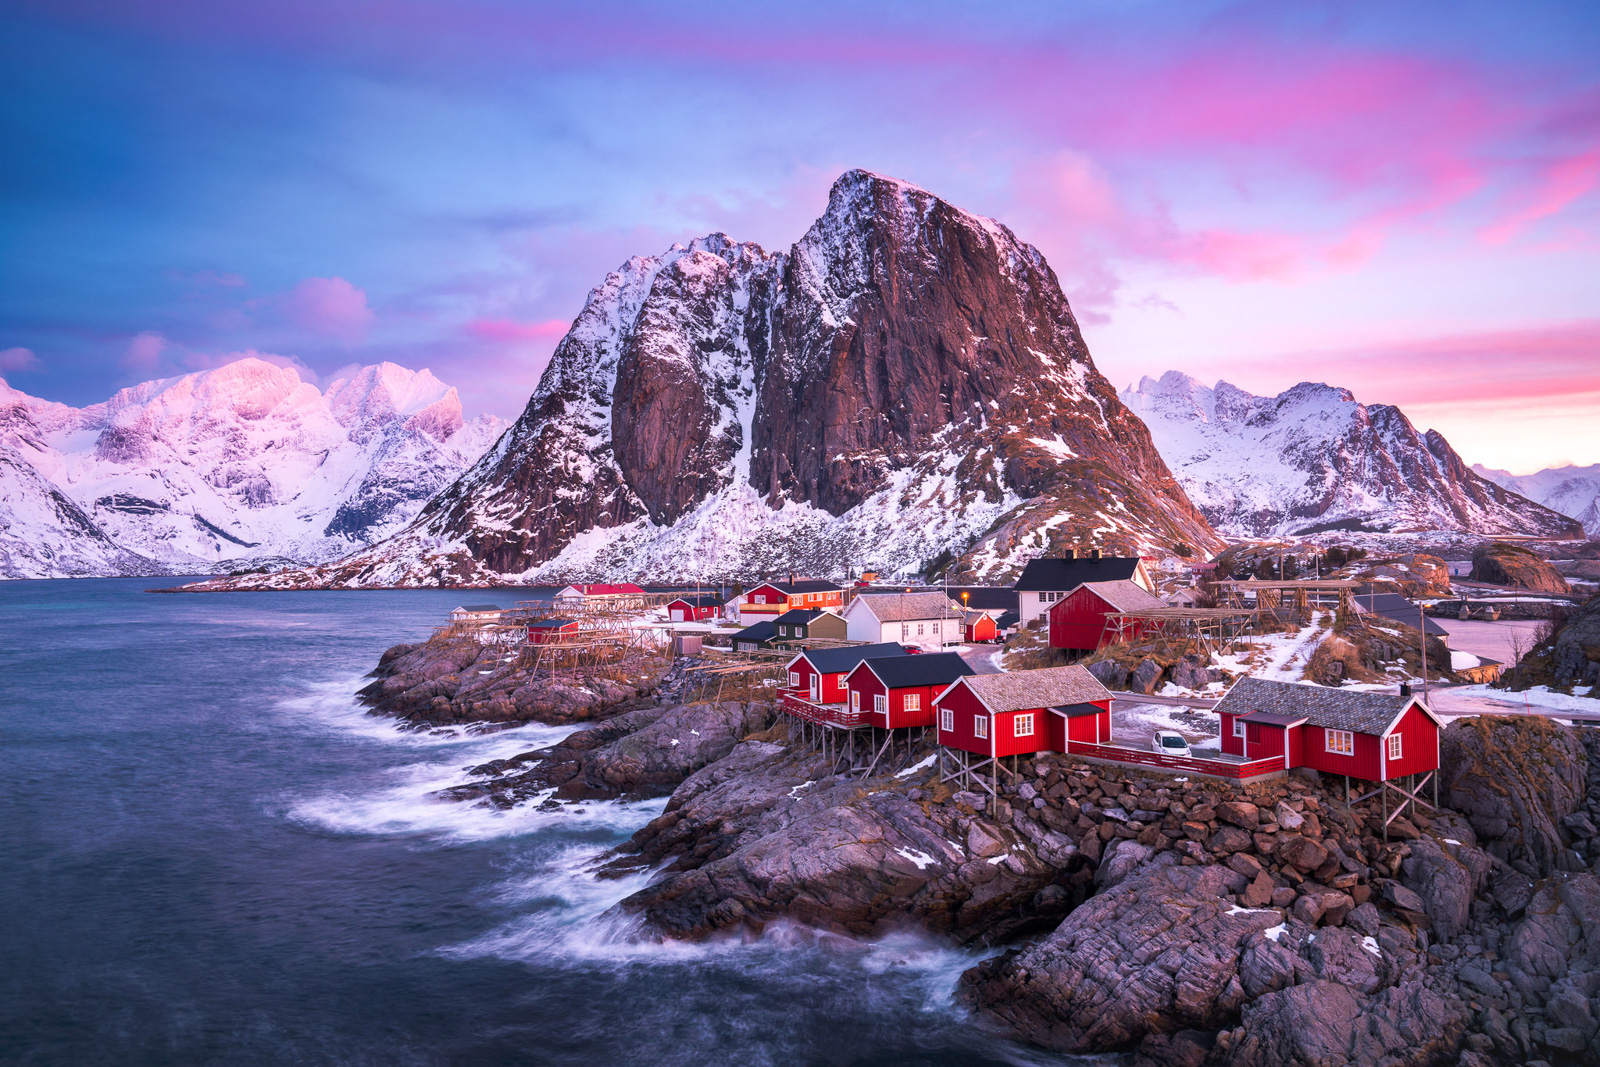 Hamnoy Bridge, Long Exposure, Mountains, Ocean, Red Cabins, Winter, norway, reine, photo